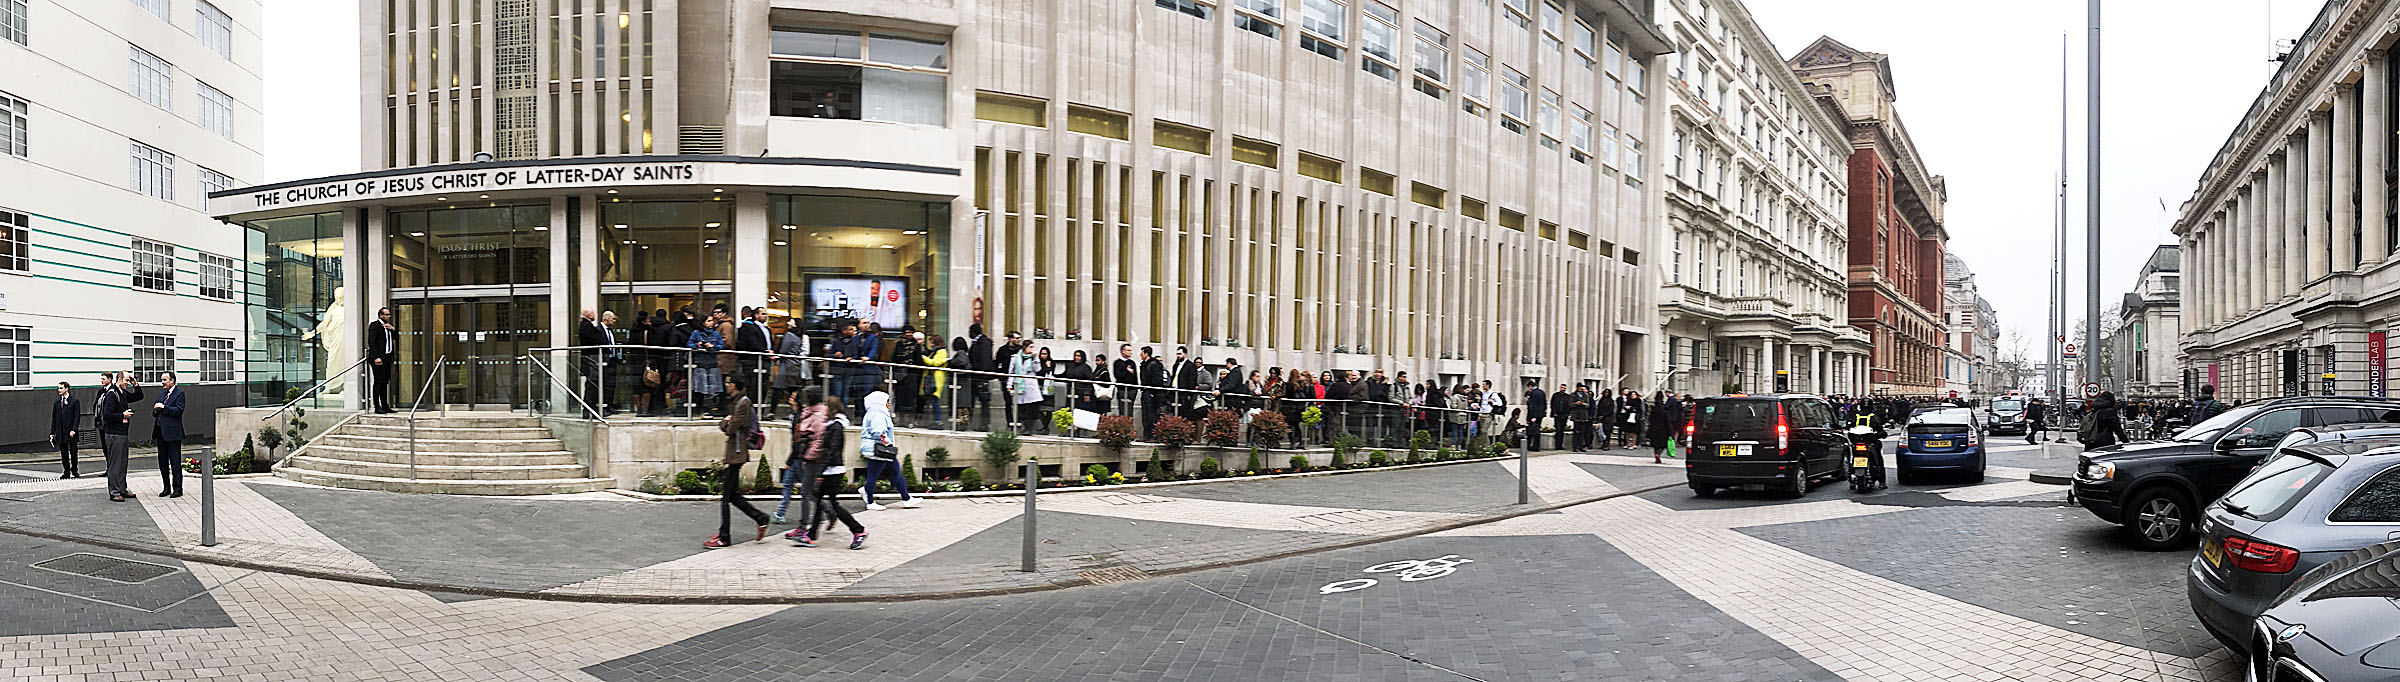 People line up to enter a meeting with President Russell M. Nelson at the Hyde Park Chapel in London on Thursday, April 12, 2018.